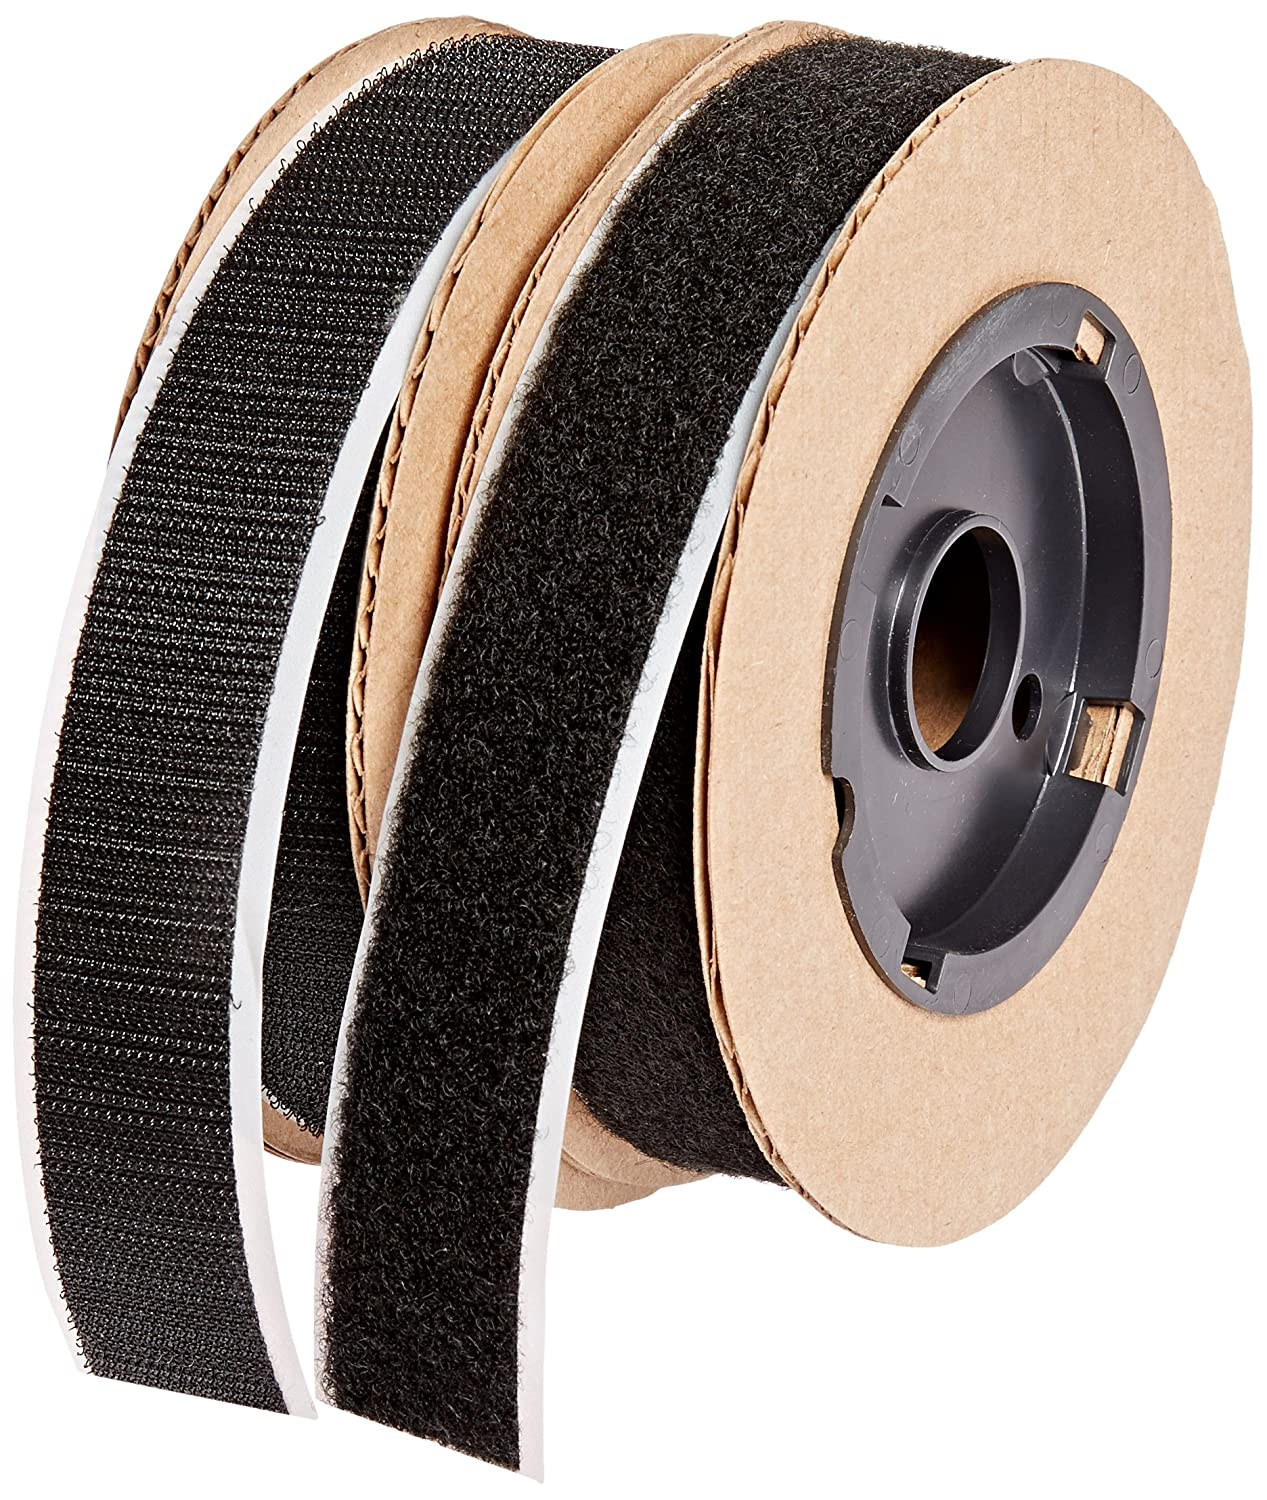 0132 Adhesive Backed VELCRO 3804-SAT-PSA//B Black Super Adhesive Nylon Hook and Loop Combo Pack 1 Wide 15 Length 1 Wide 15/' Length CS Hyde Company Inc 3804-SAT-PSA//B-15